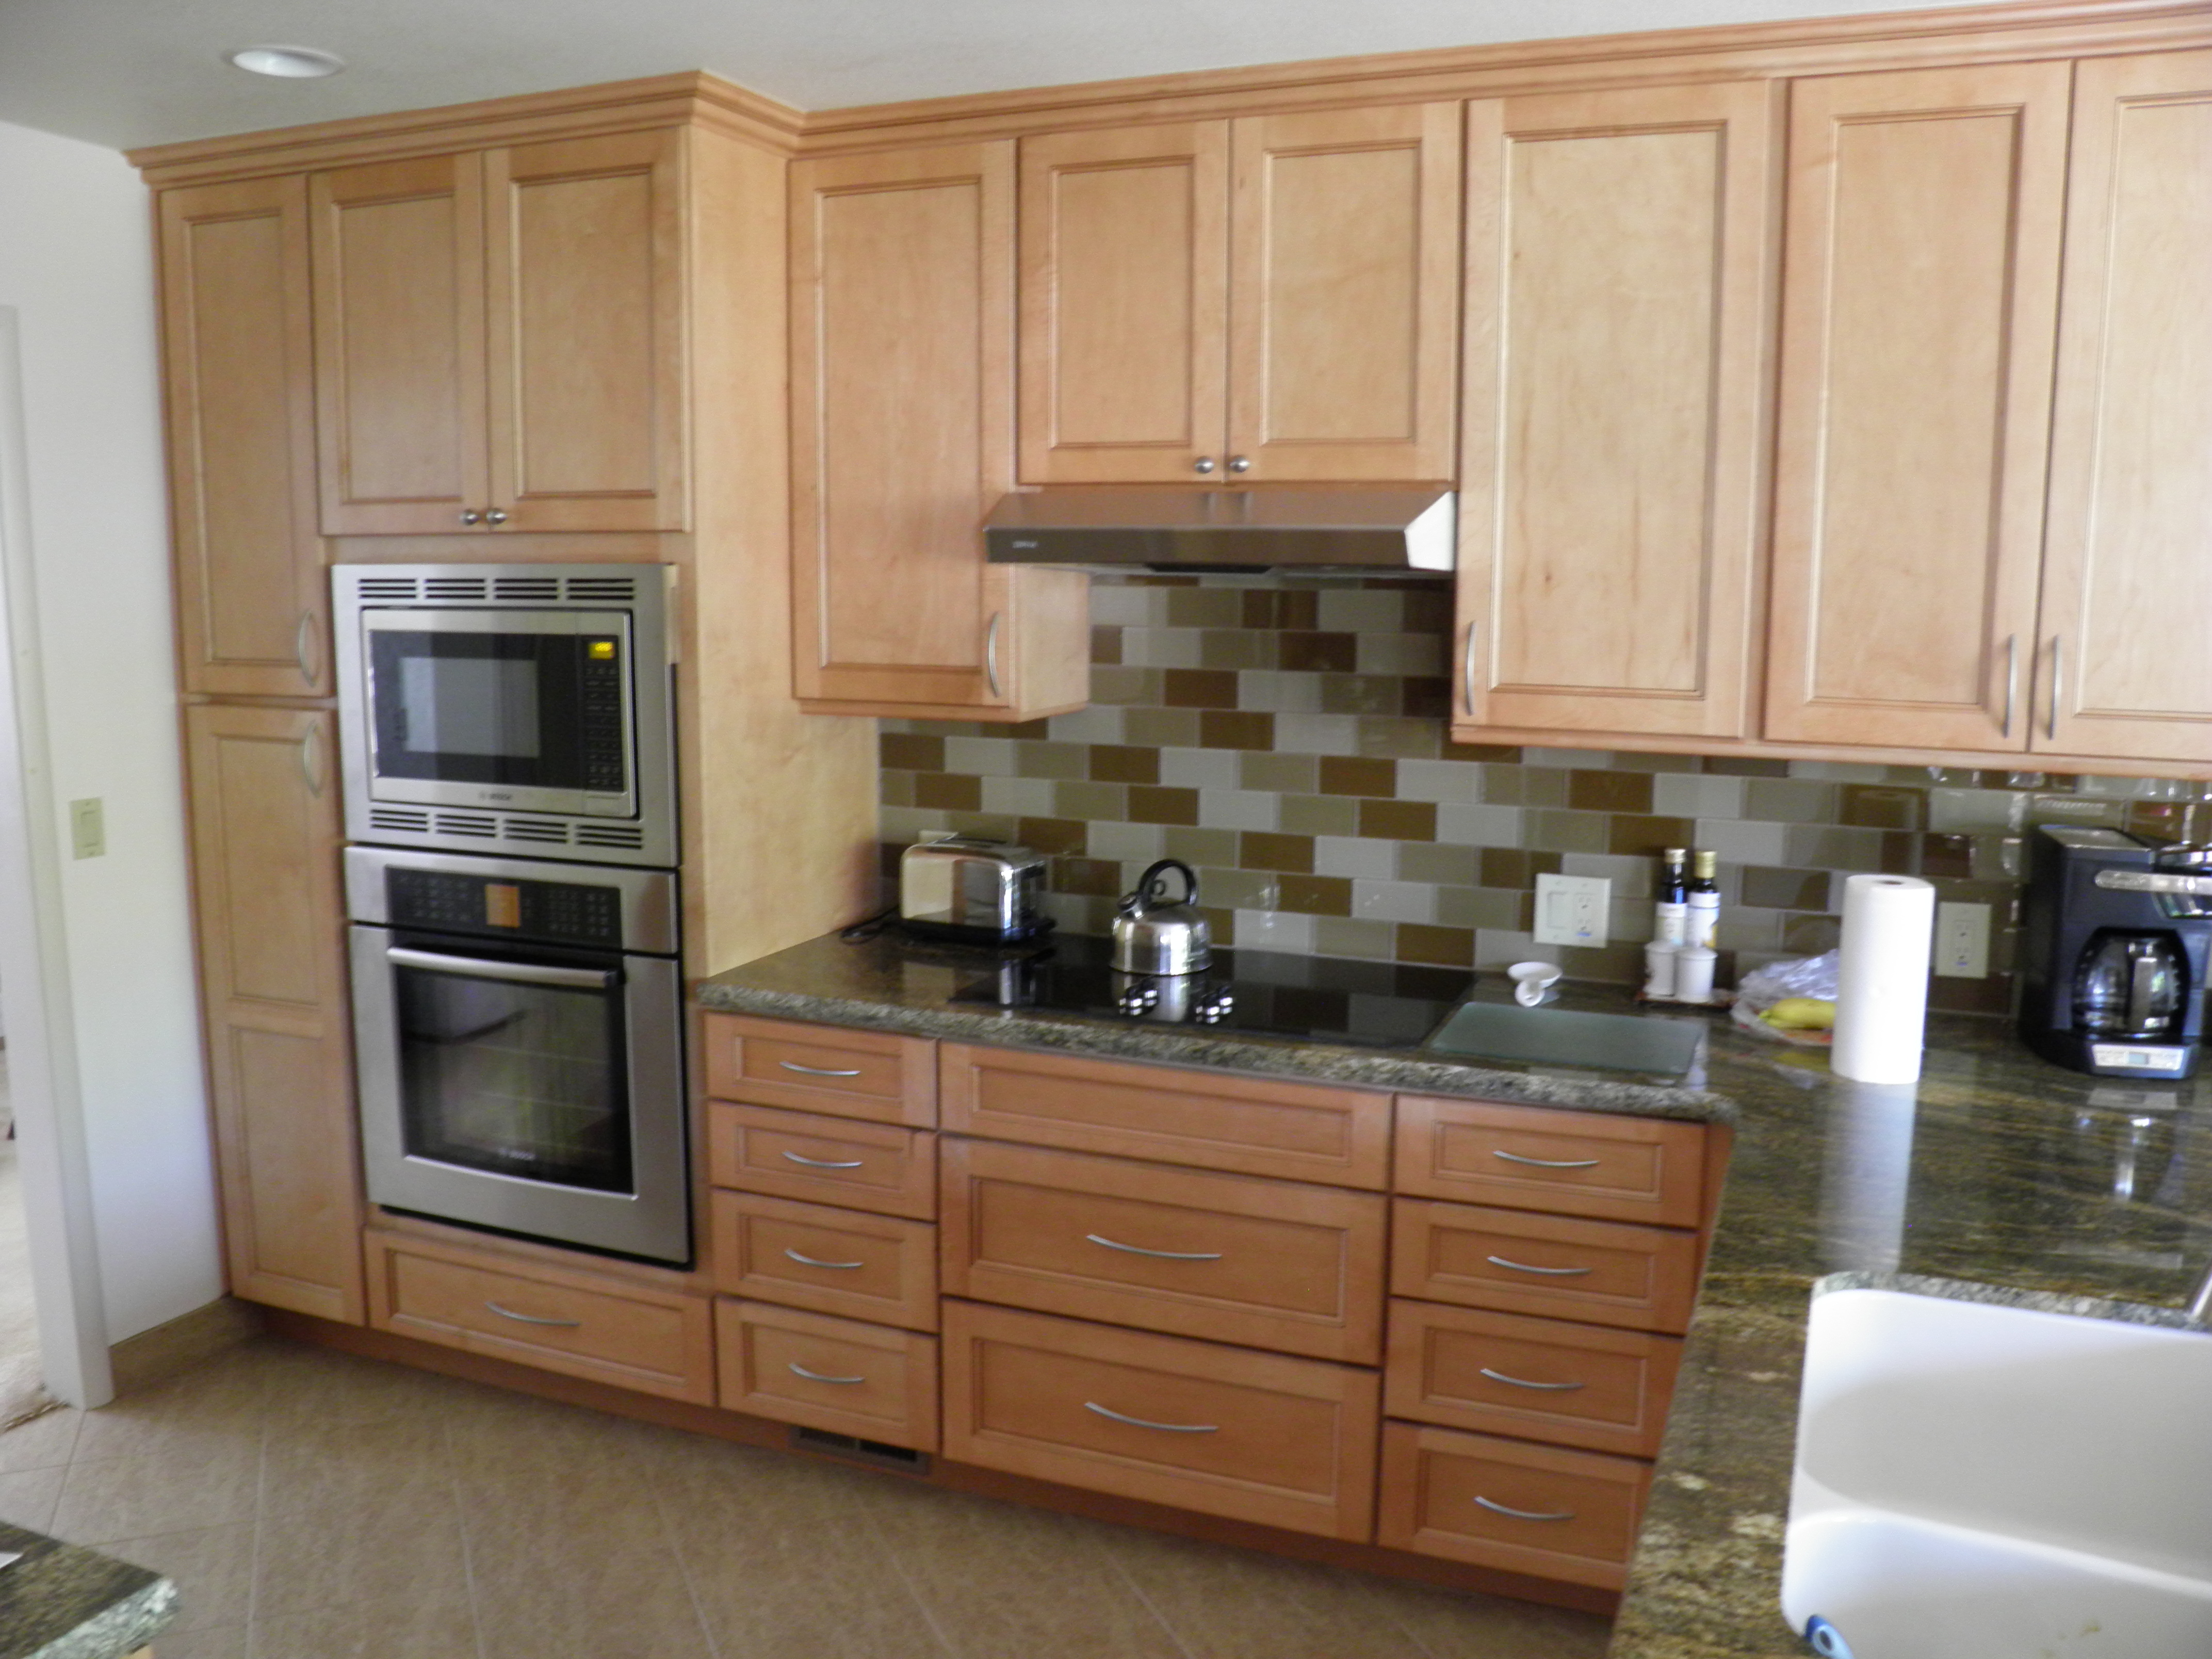 Sacramento kitchen remodeling yancey company sacramento ca How to redesign your kitchen